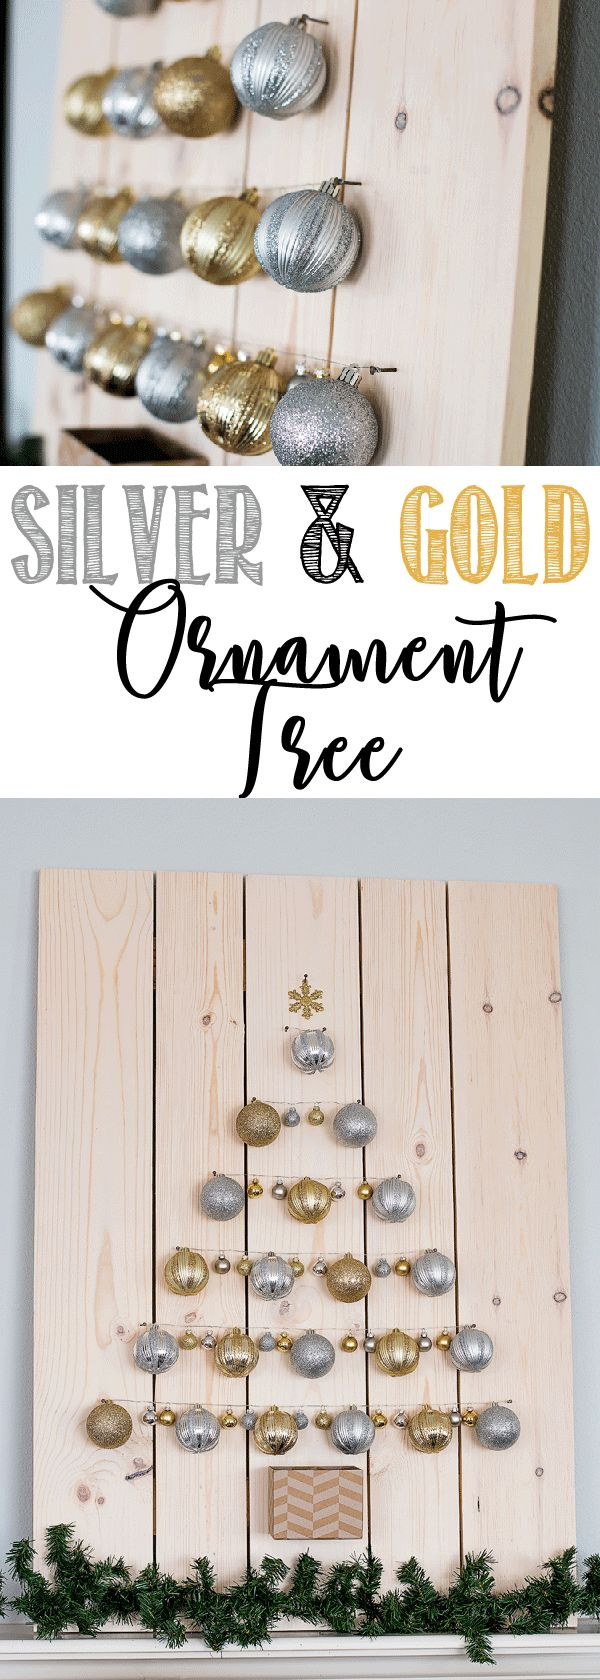 best Crates u Pallets images on Pinterest Christmas crafts